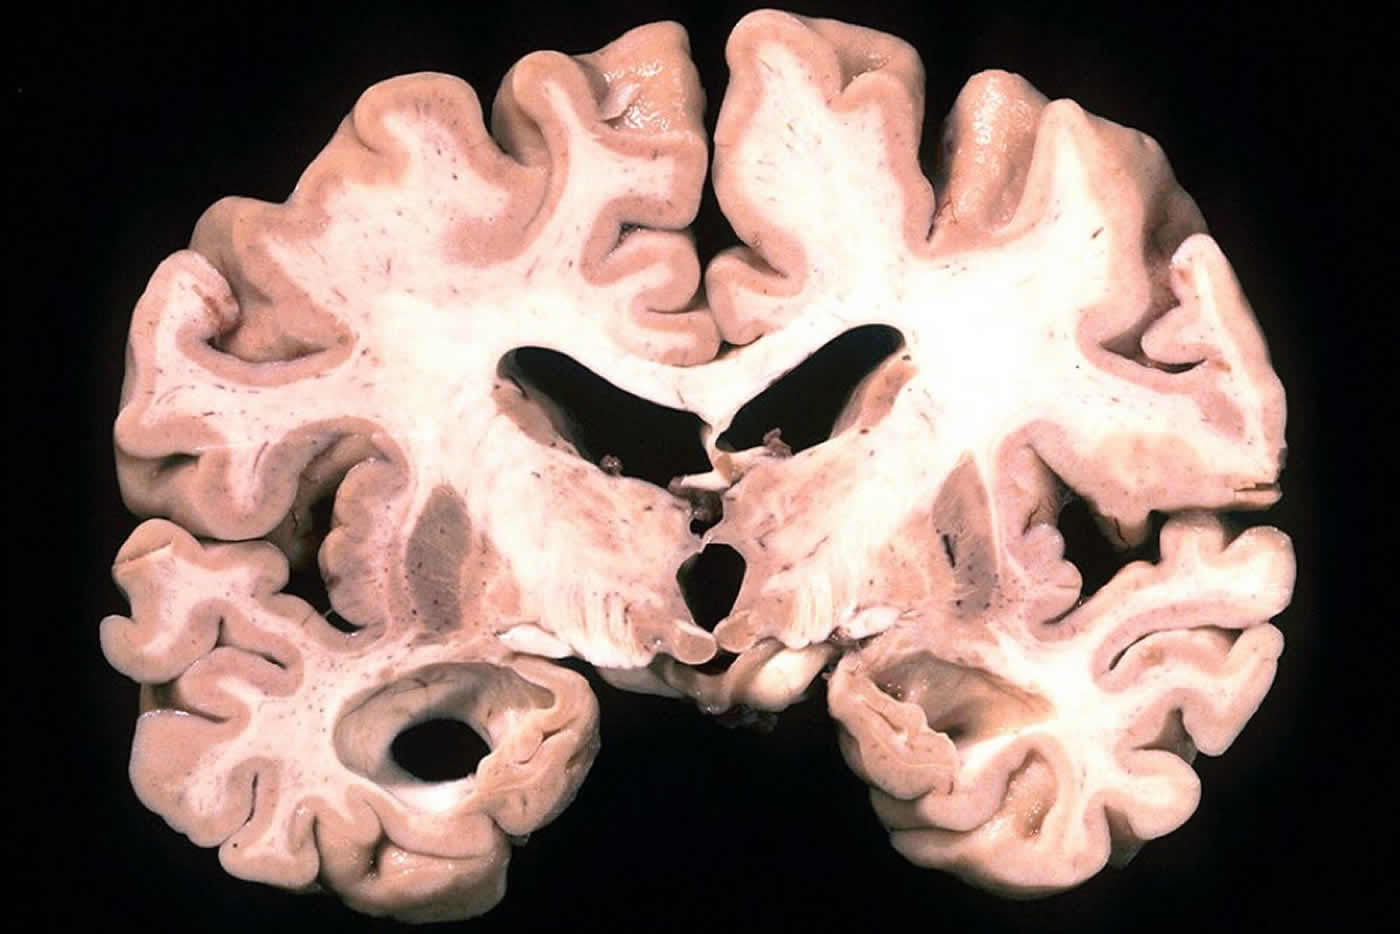 This image shows a brain slice take from a person with Alzheimer's disease.